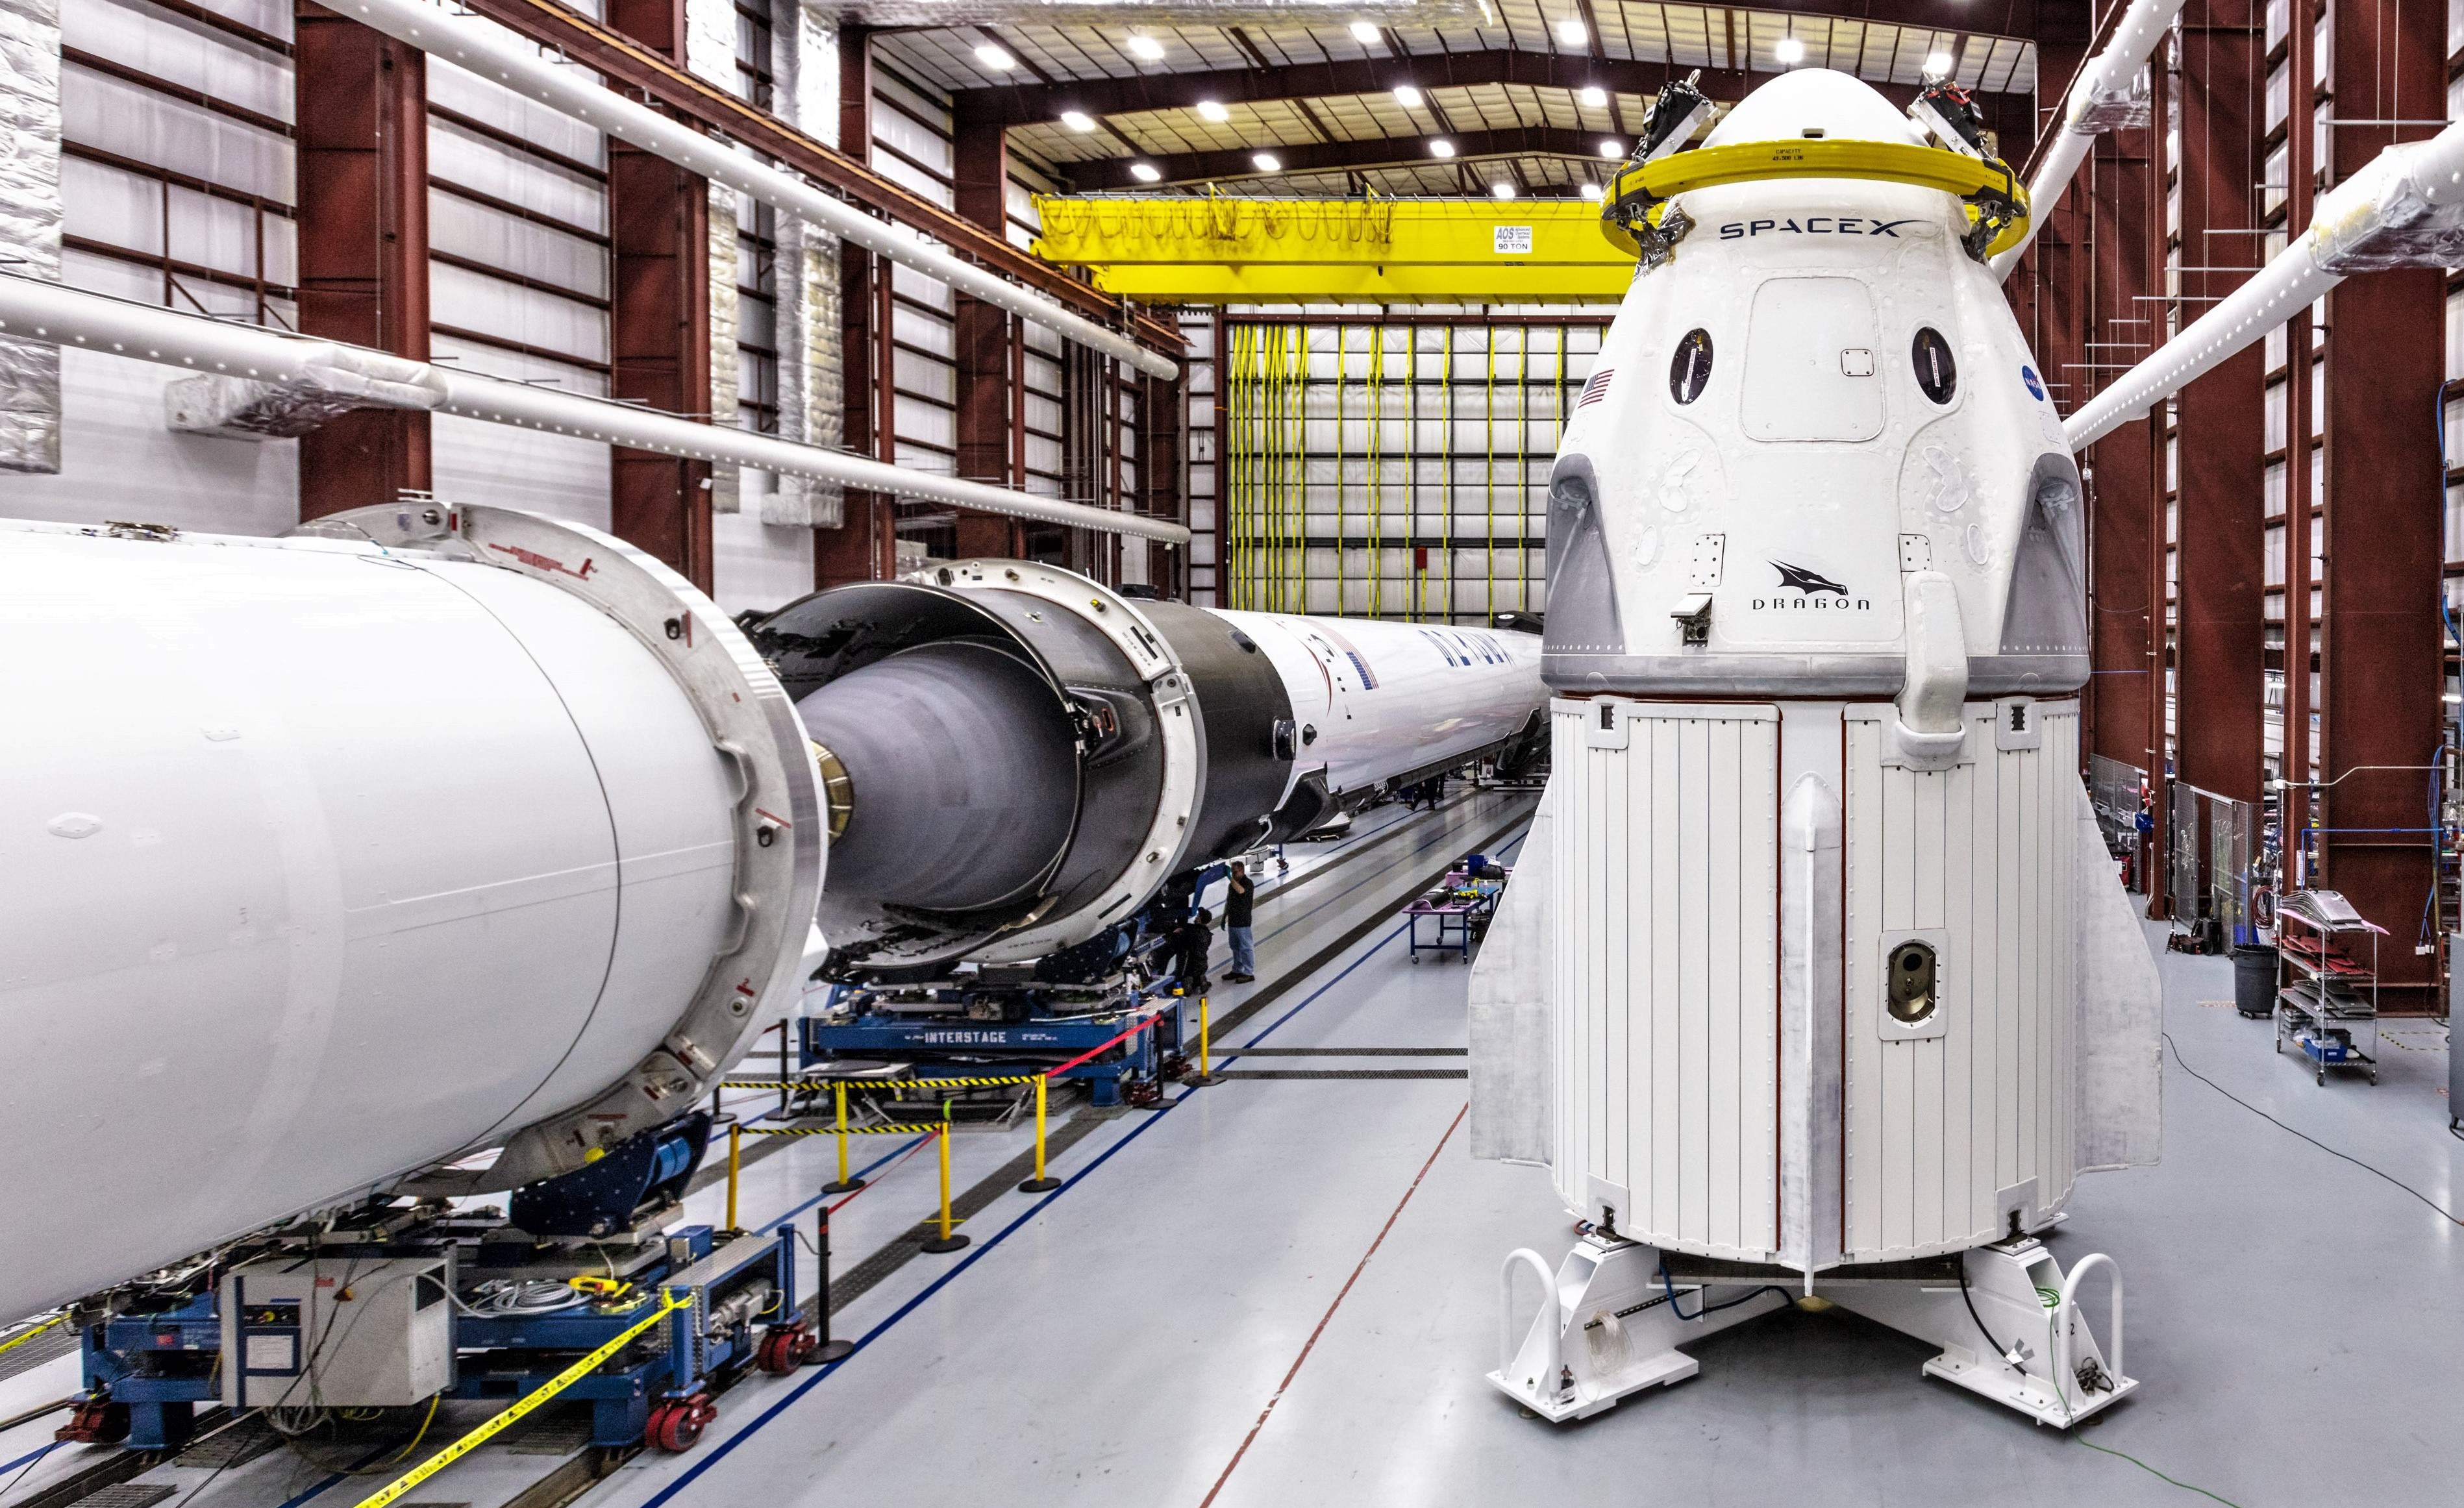 Crew Dragon DM-1 and Falcon 9 B1051 39A (SpaceX) 3 crop(c)